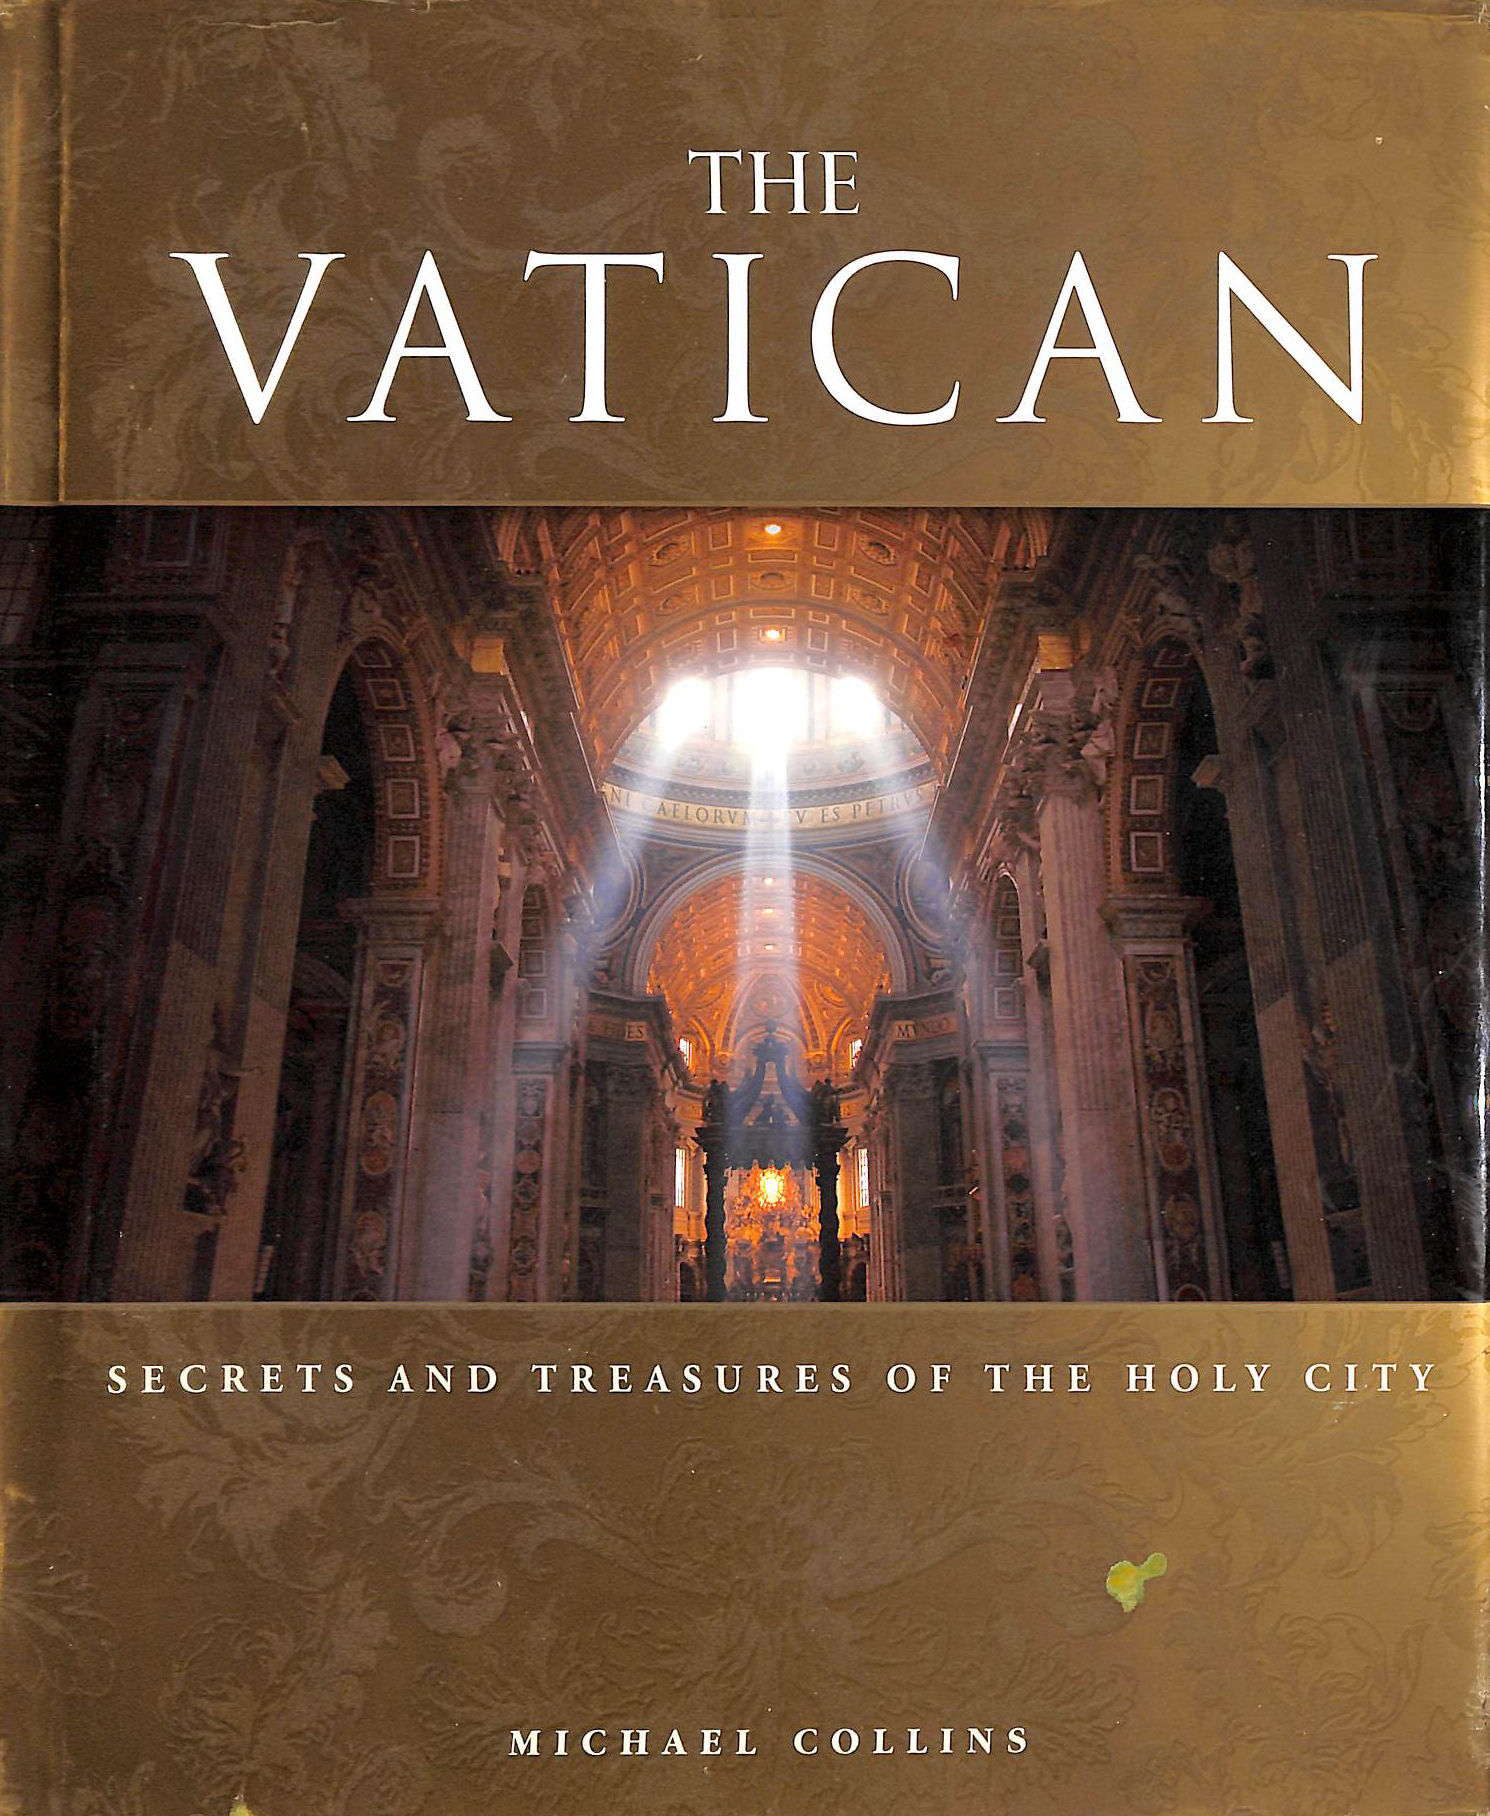 Image for The Vatican: Secrets and Treasures of the Holy City